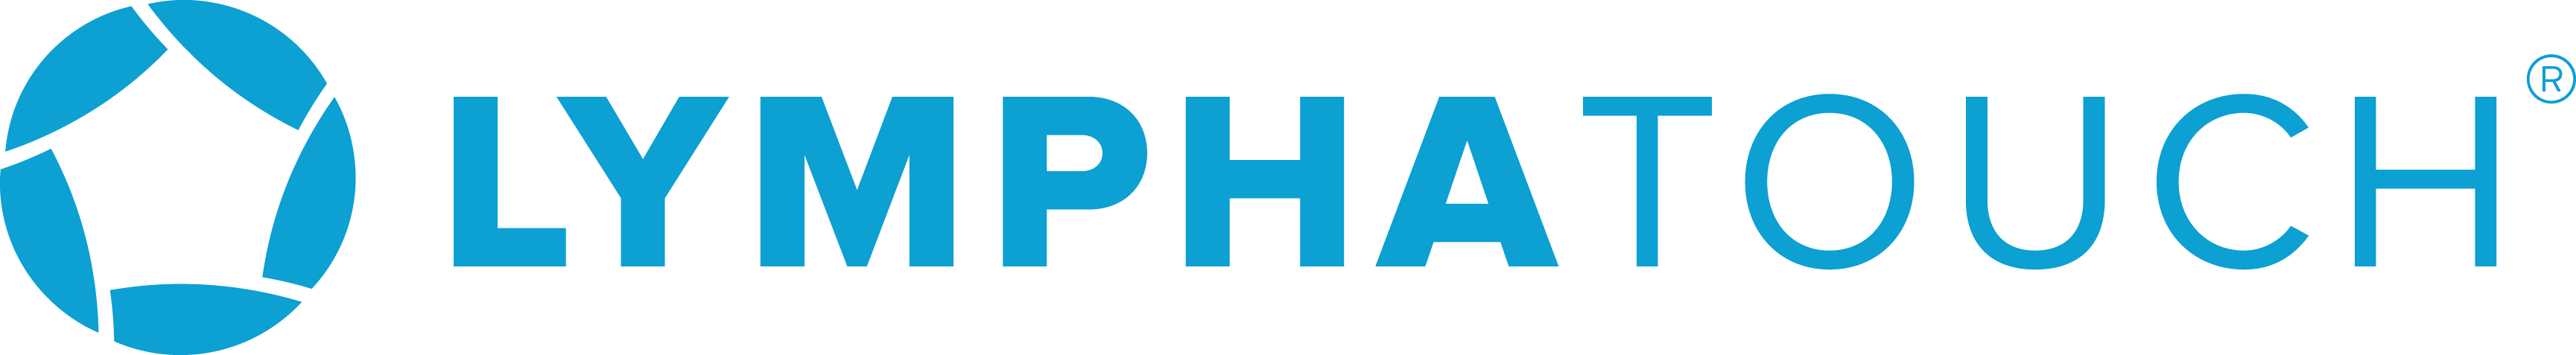 Lympha_Touch_logo